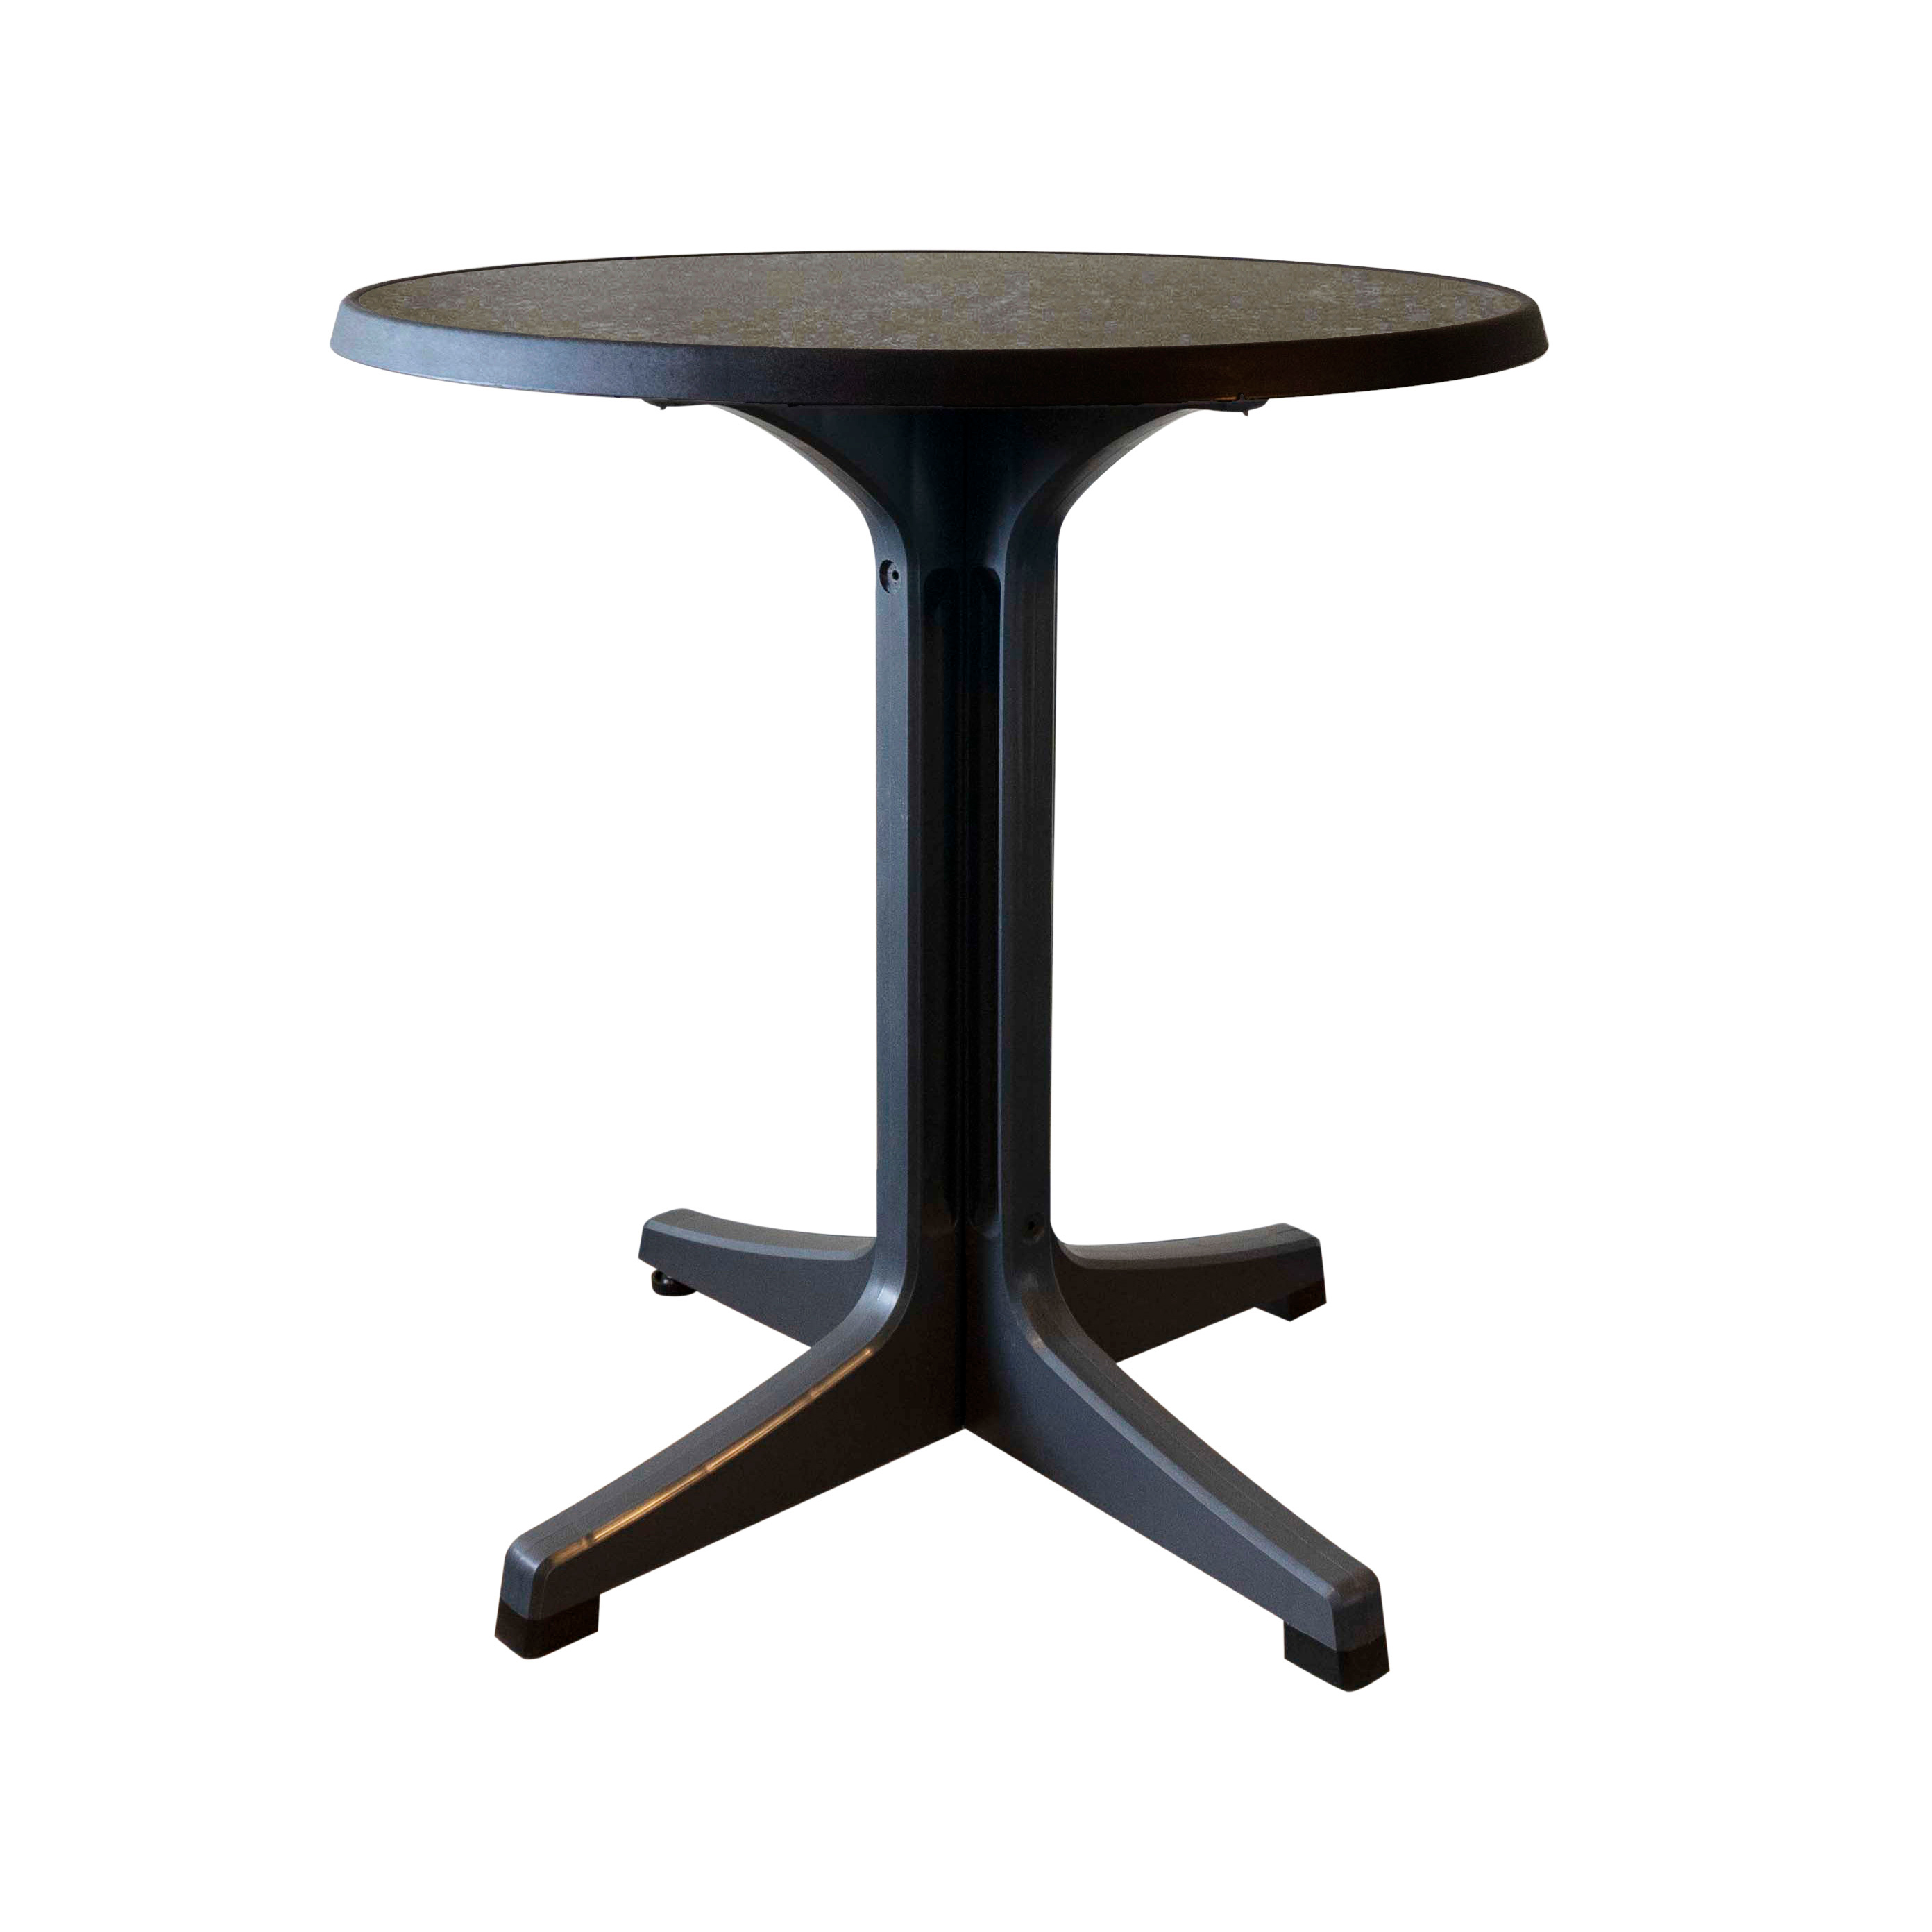 Grosfillex US284744 table, outdoor